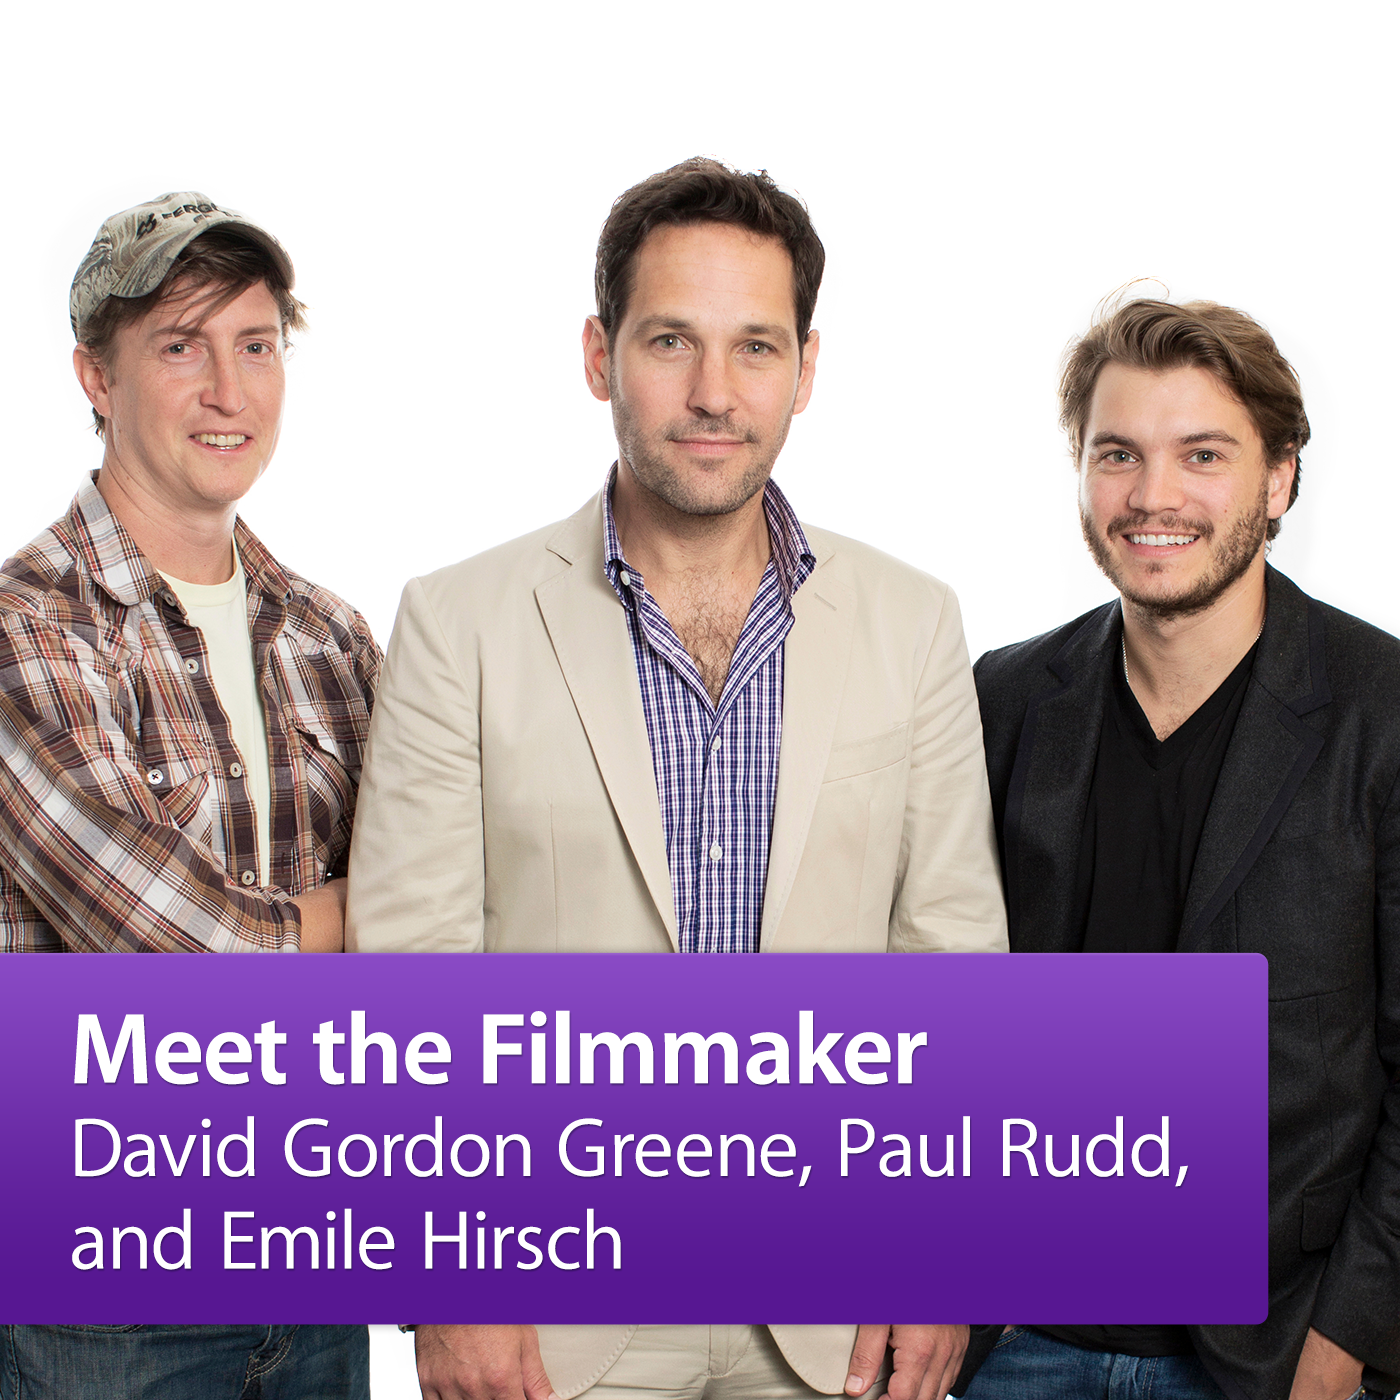 Paul Rudd, Emile Hirsch, and David Gordon Green: Meet the Filmmaker